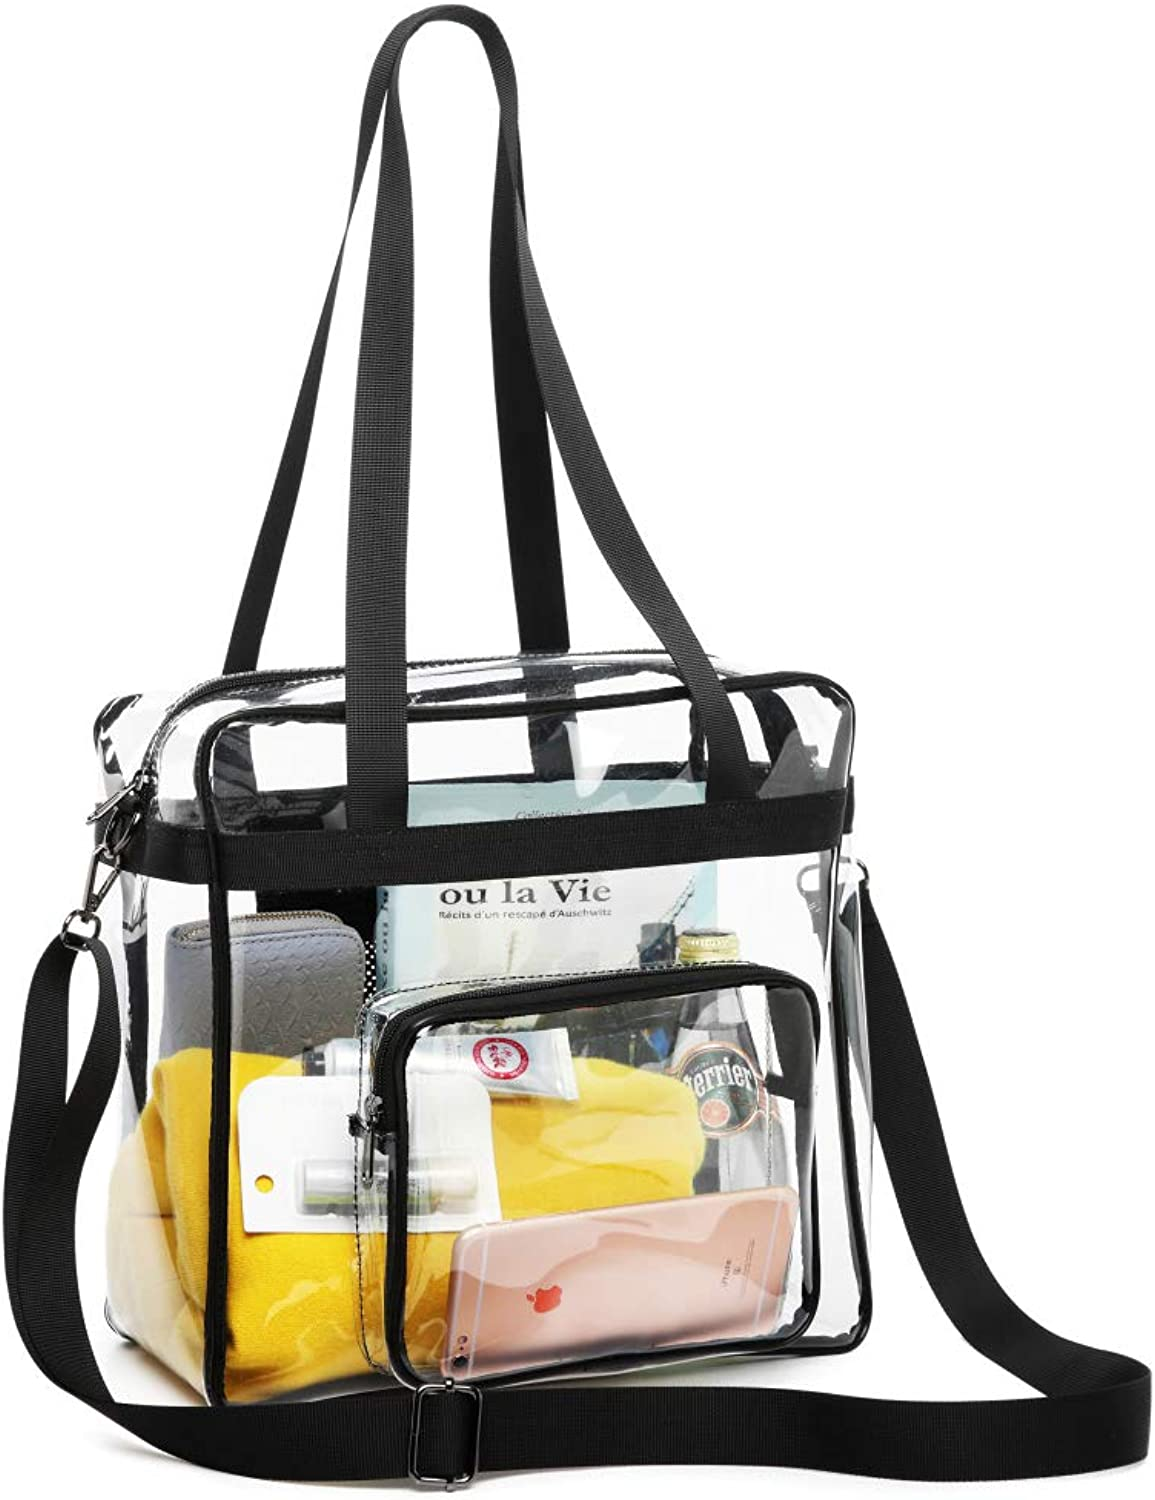 Clear Bag Stadium Approved, Fcolor NFL Approved Clear Tote Bag, Heavy Duty and Waterproof Plastic Transparent Bag with Adjustable Strap Clear Purse for Women and Men, Black